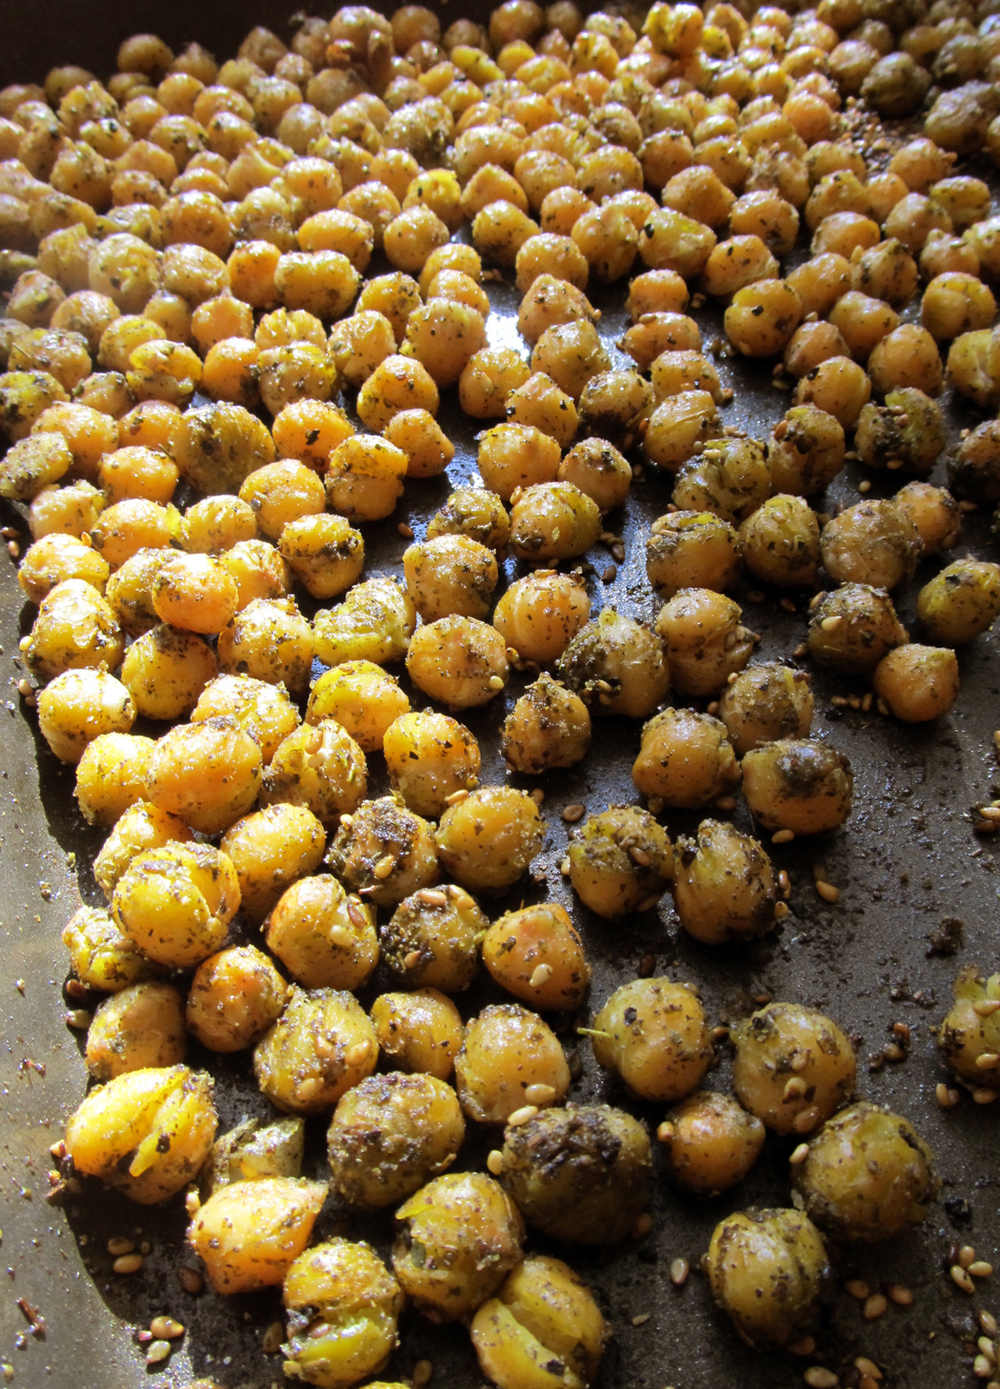 Roasted chickpeas are also a tasty, savory and portable high-protein snack.